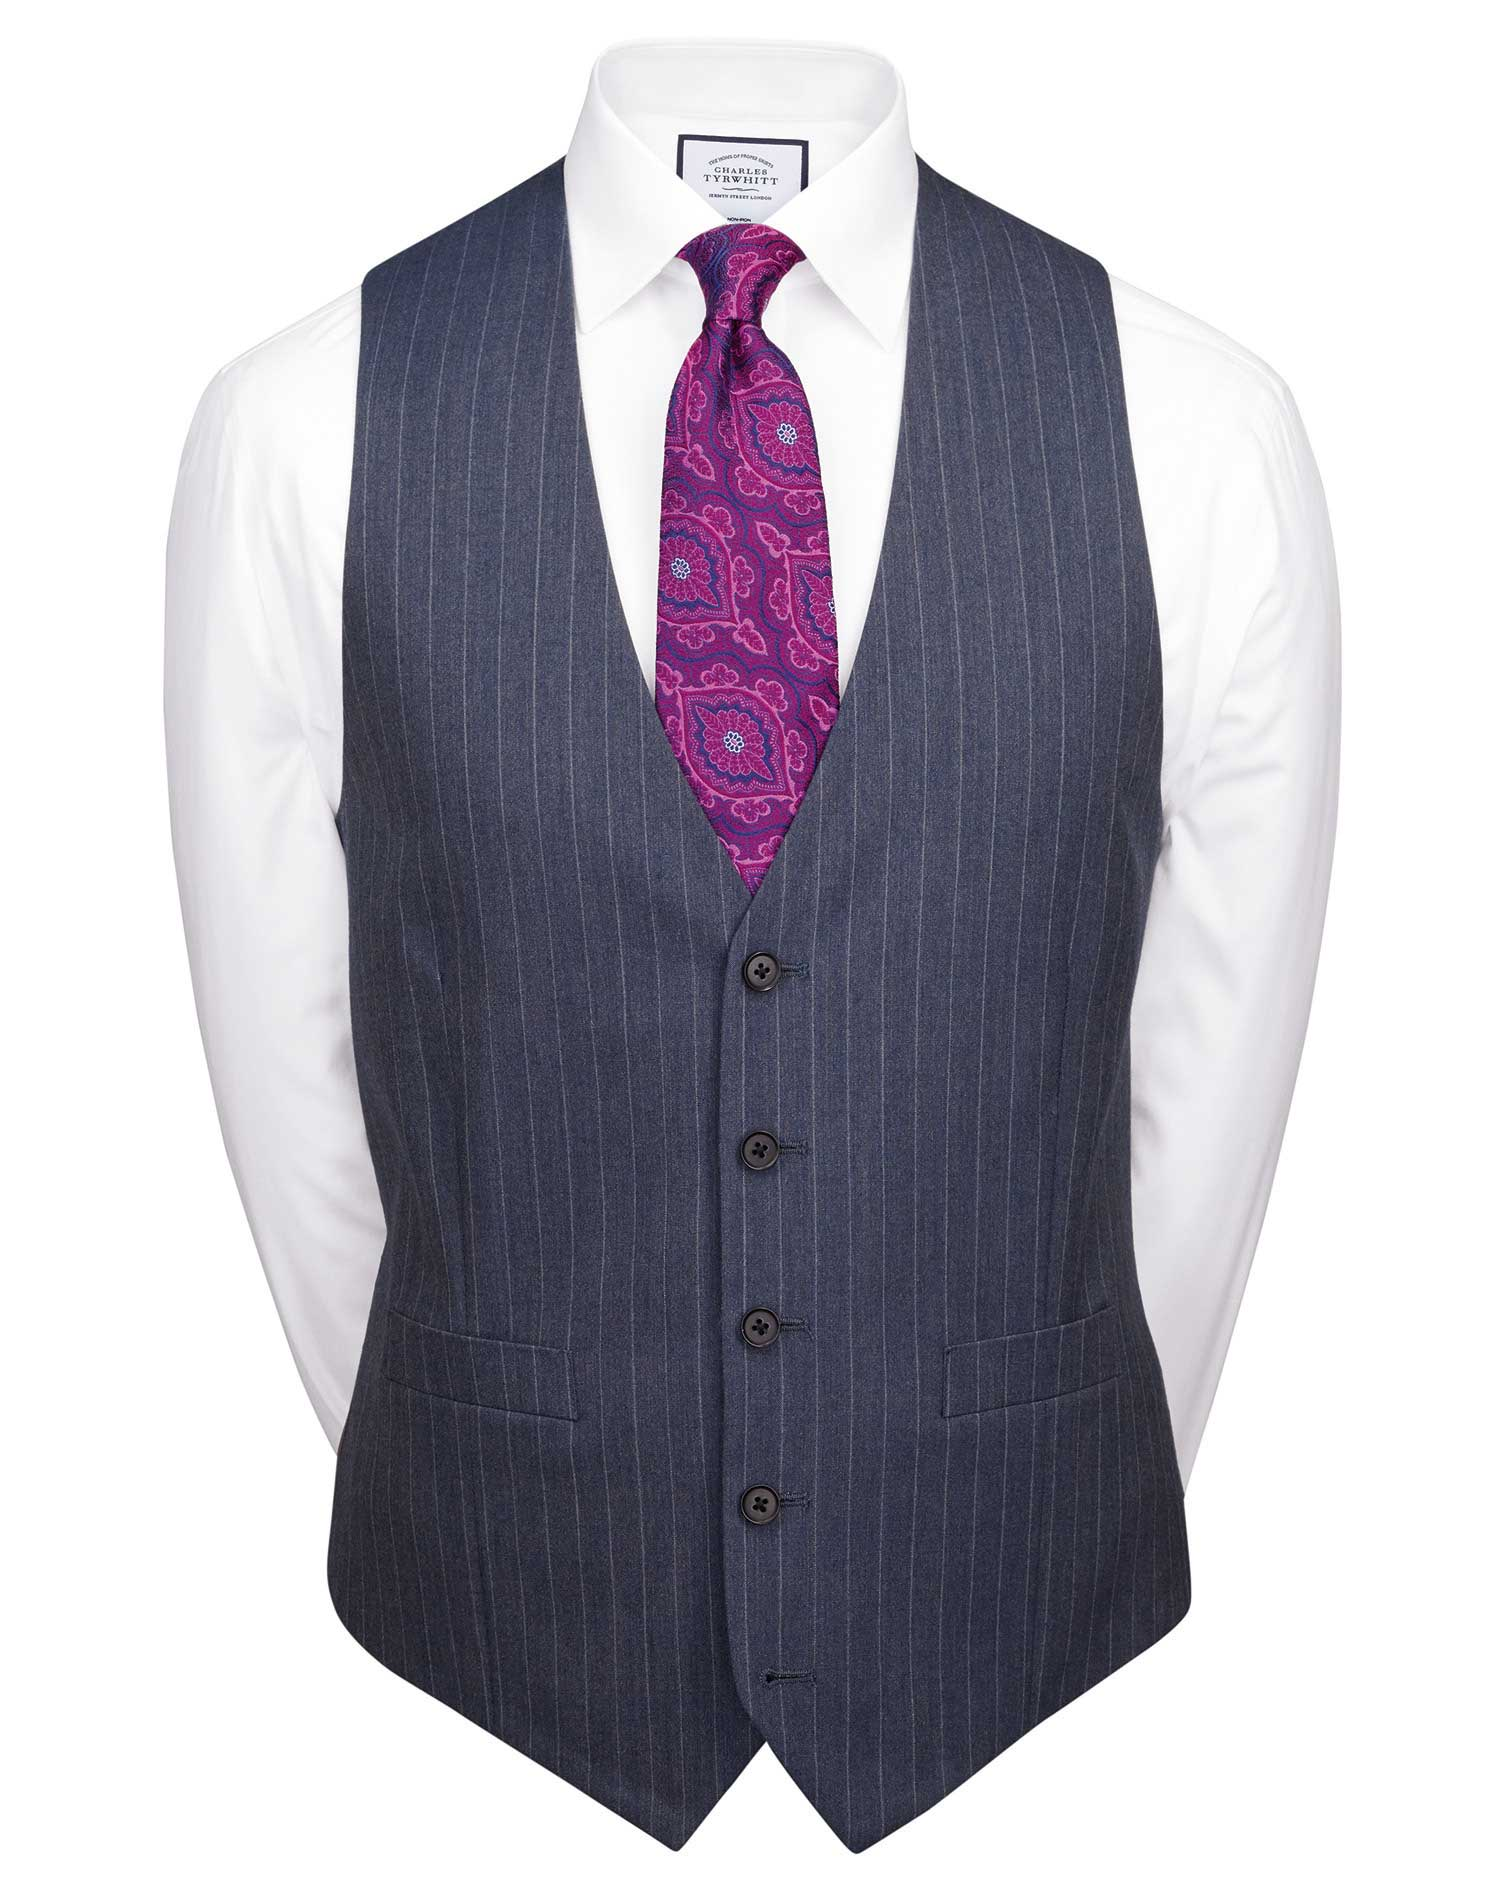 Airforce stripe slim fit Panama business suit waistcoat